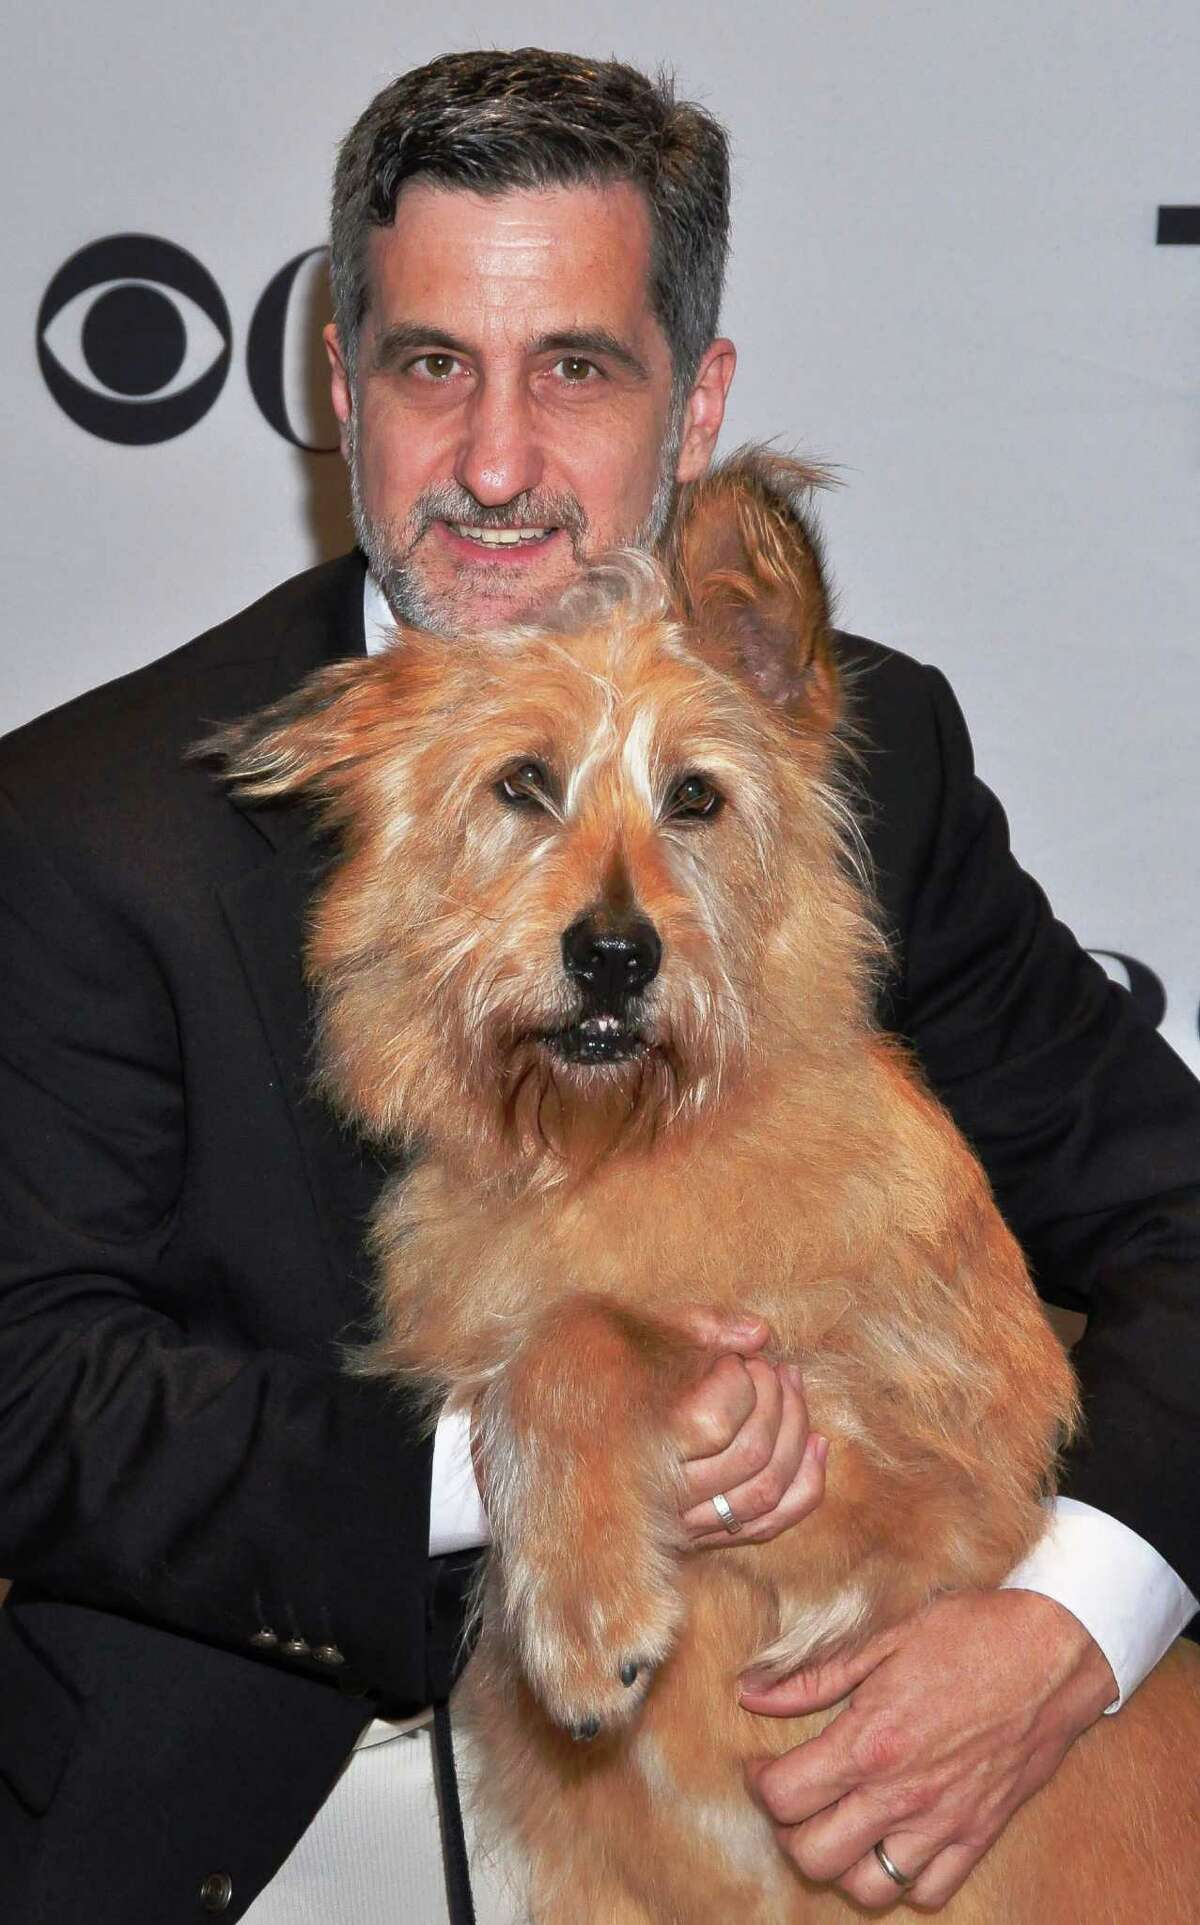 Famed Broadway animal trainer Bill Berloni poses with Oliver who is playing the role of